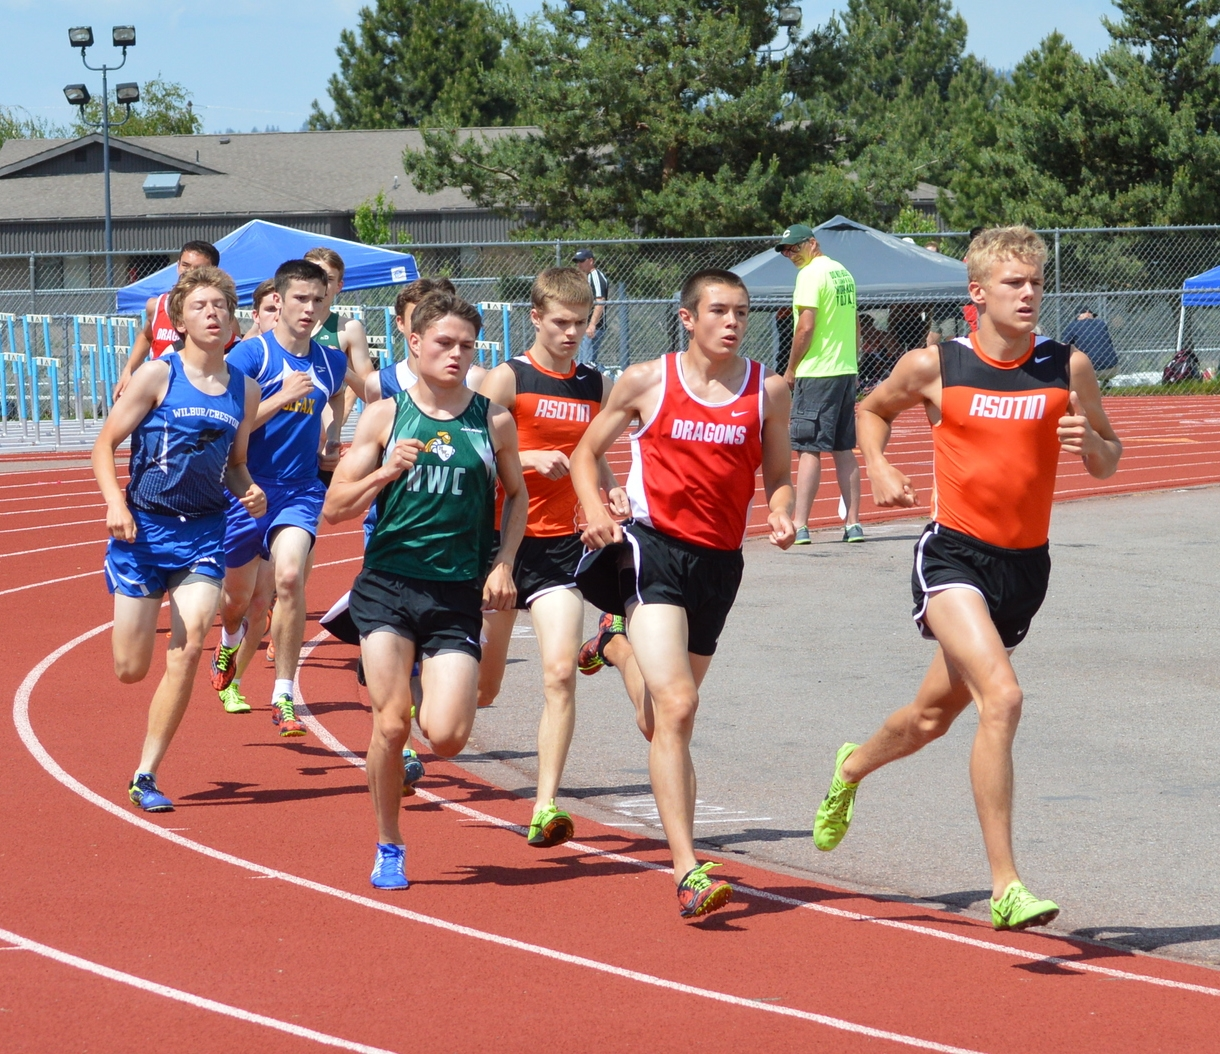 Chandler Teigen (Asotin), leading, with Nathan Vanos (St. George) running a strong race behind him. Jack Ammon of NW Christian Colbert and Thomas Weakland round out the top four.